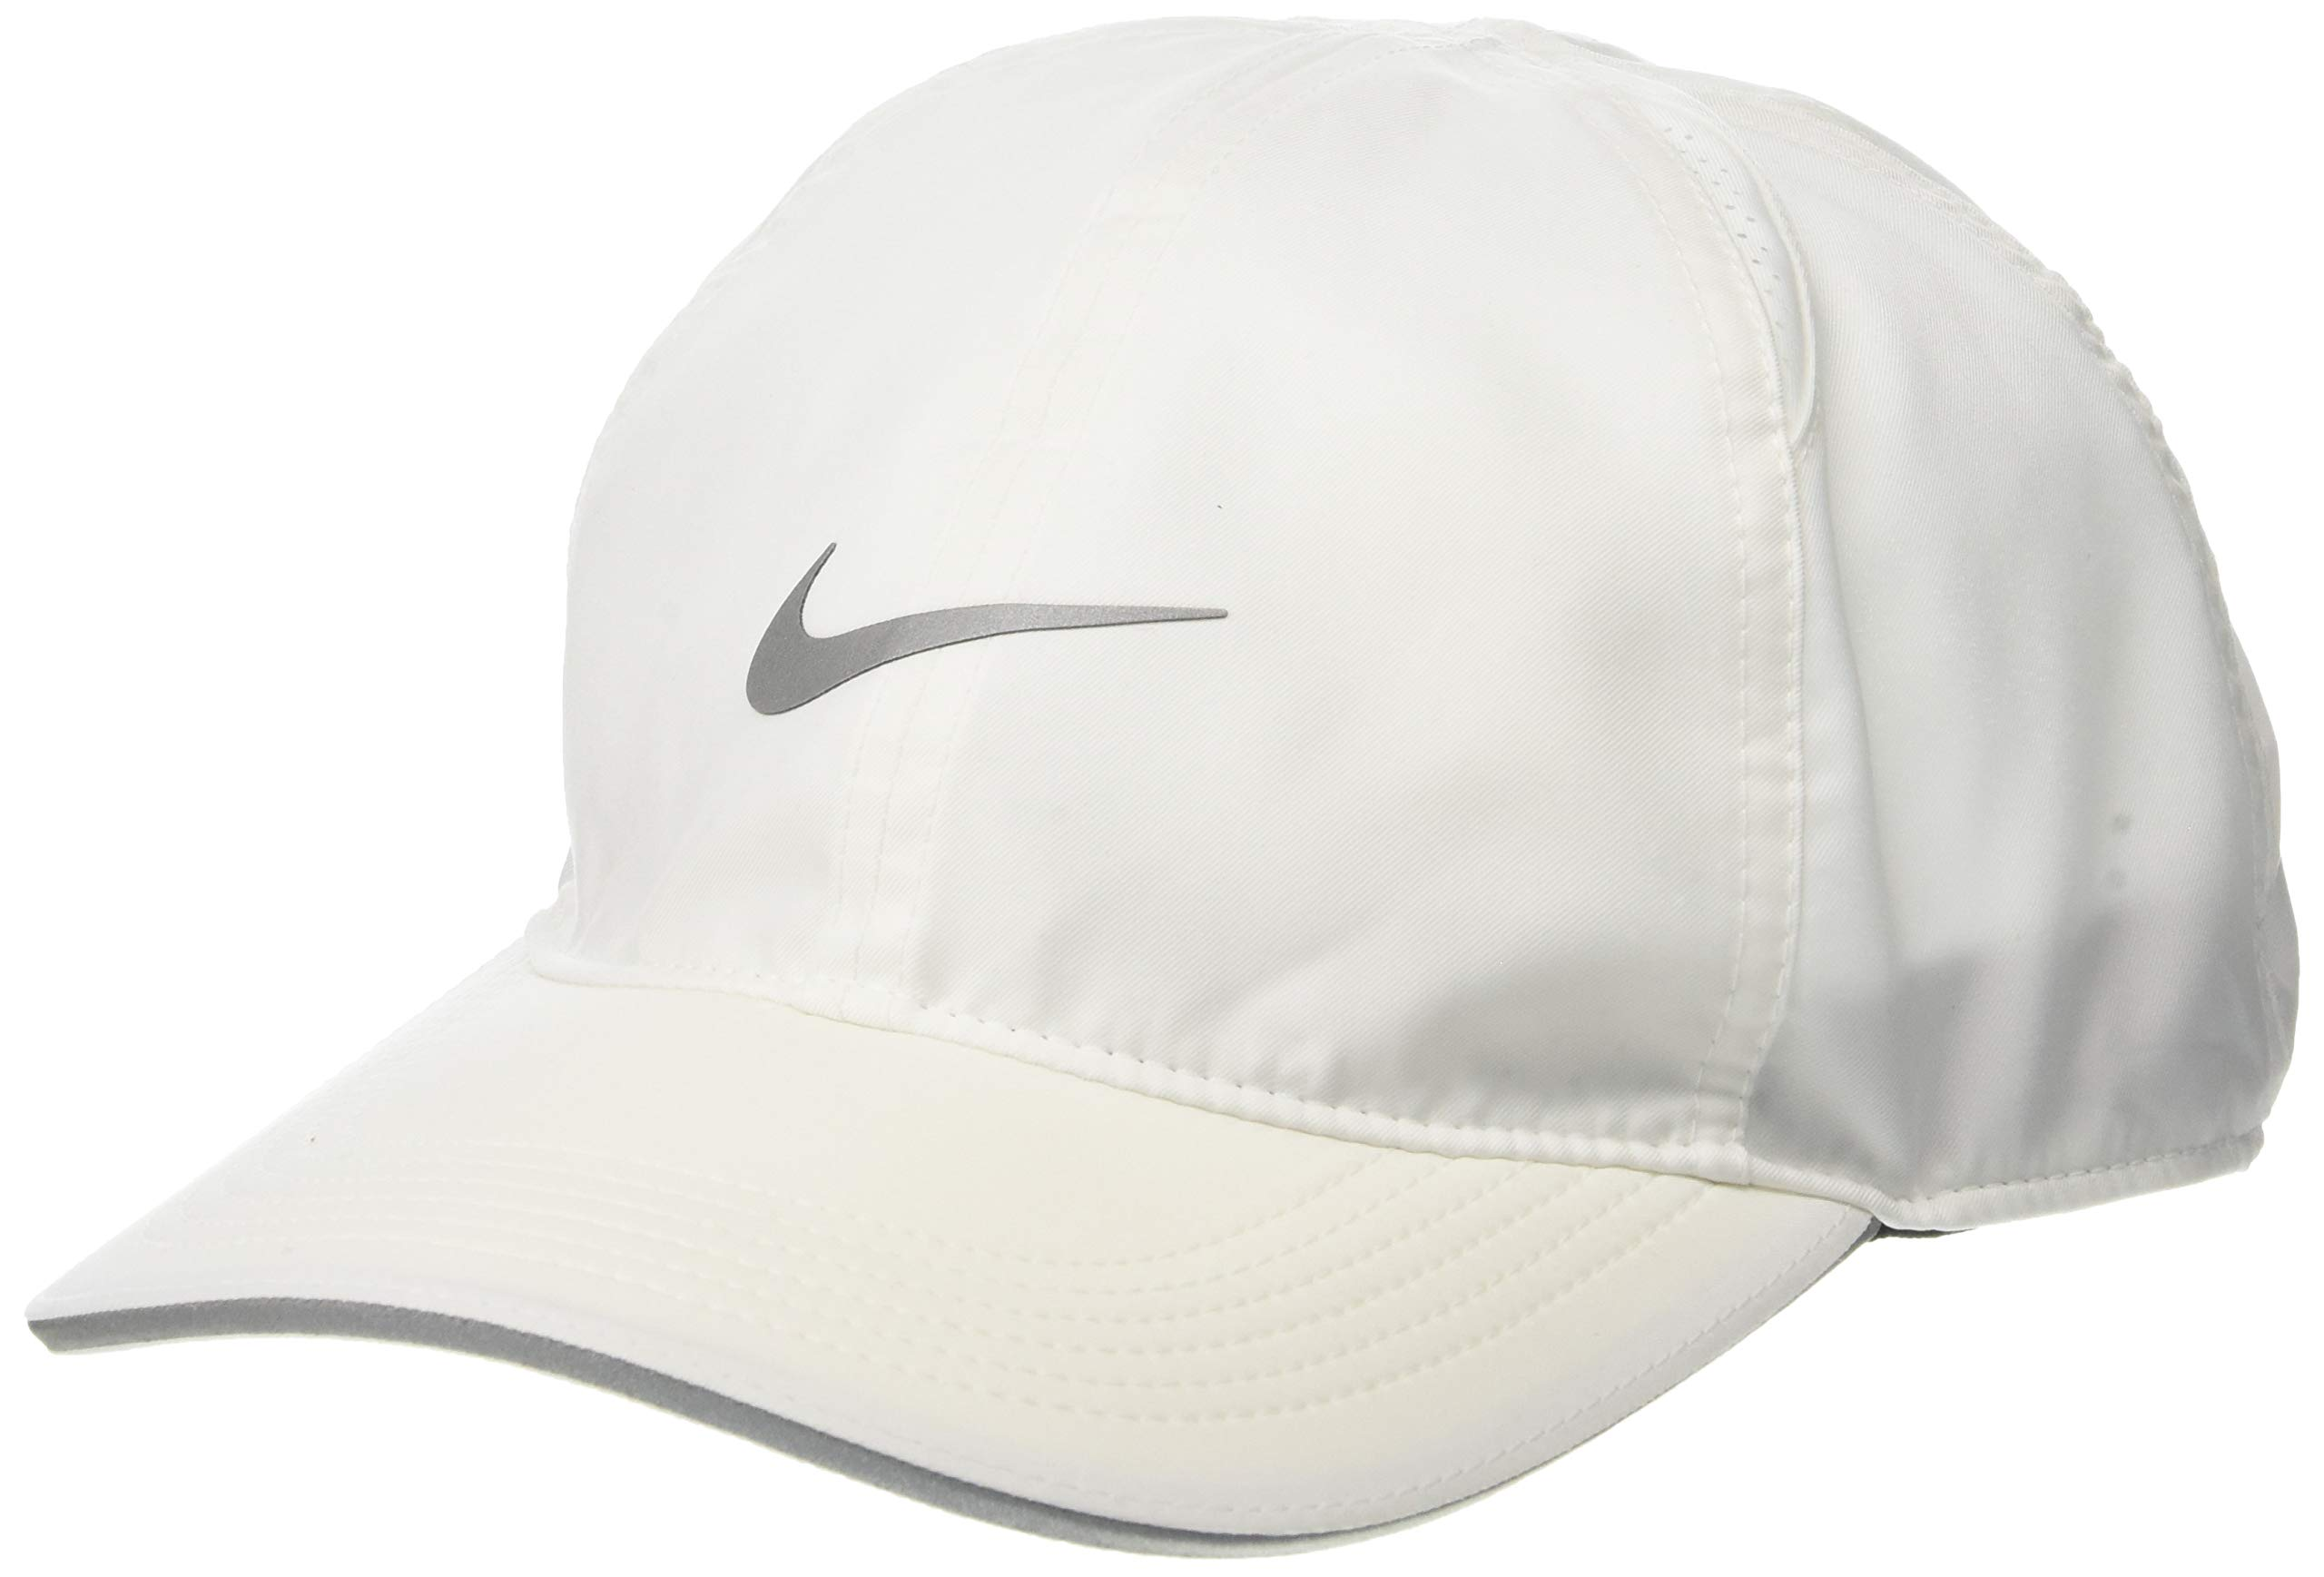 Nike Featherlight Running Cap, White, Misc by Nike (Image #1)